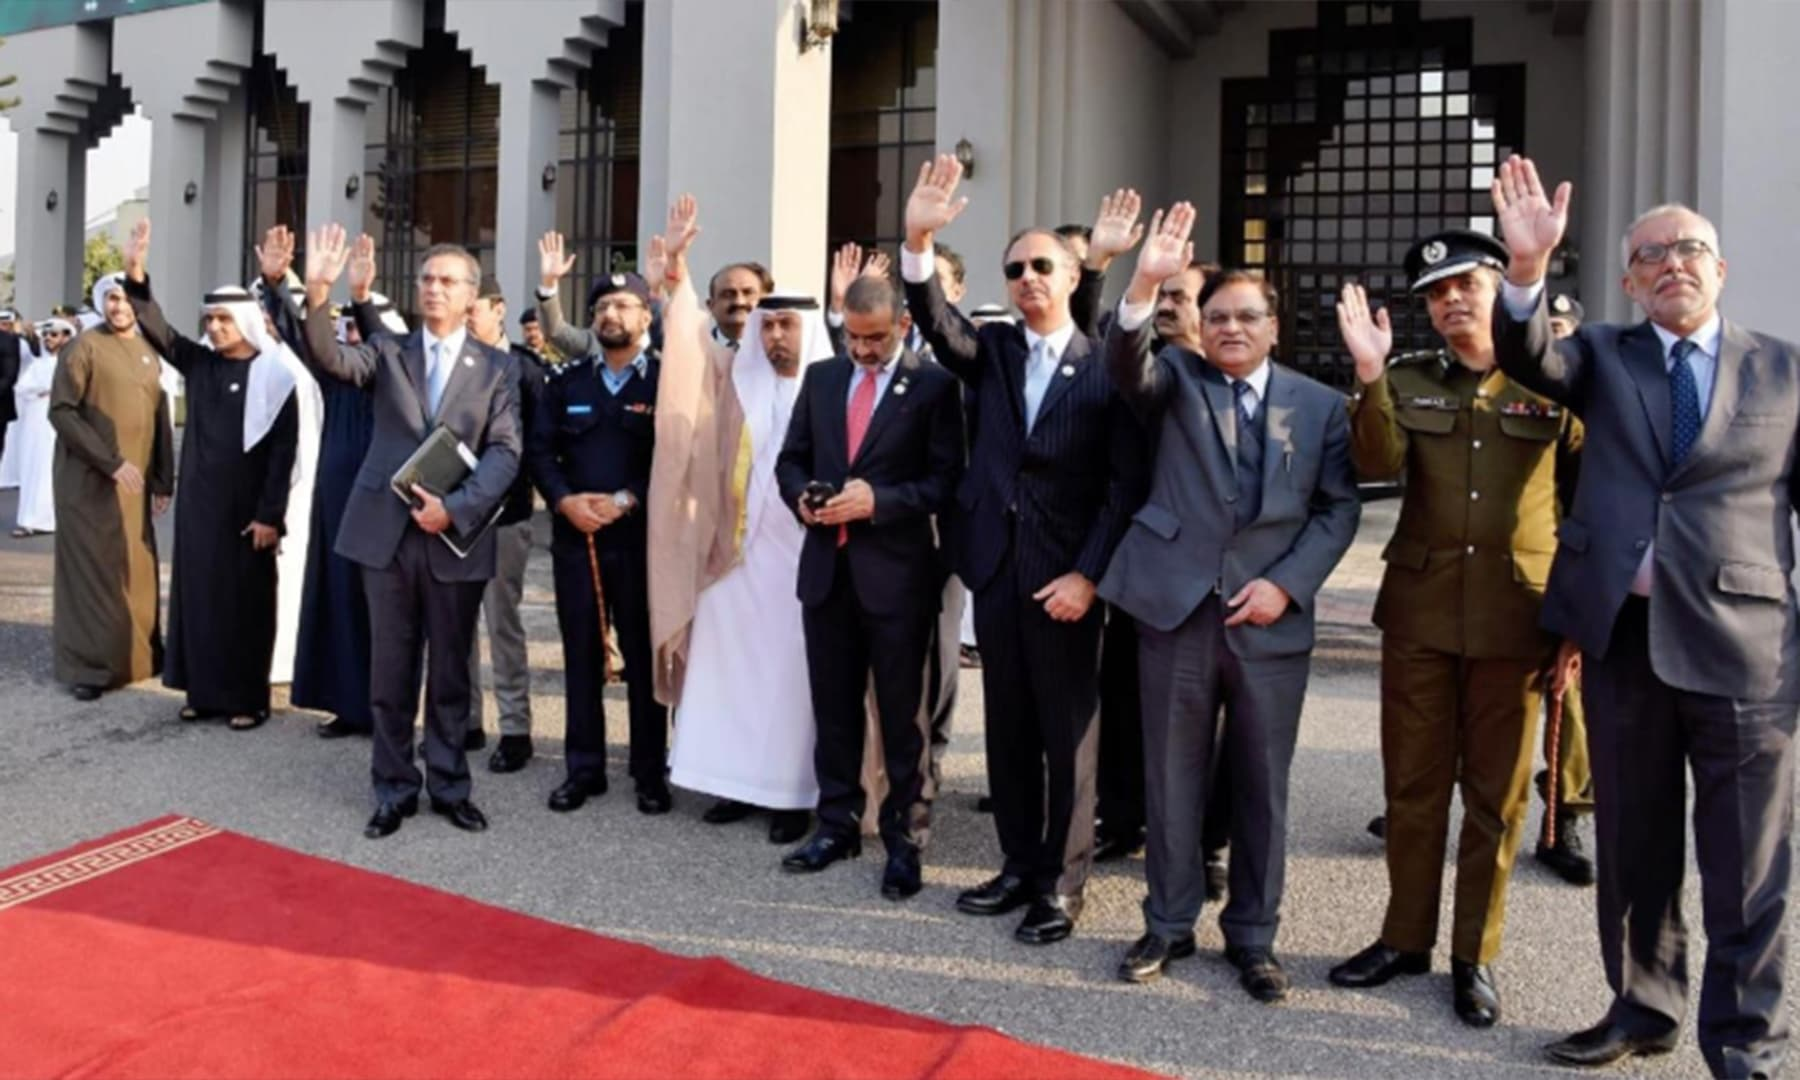 Minister for Energy Omar Ayub Khan waves goodbye to UAE's crown prince upon his departure at Nur Khan airbase. — Photo: PTI Twitter